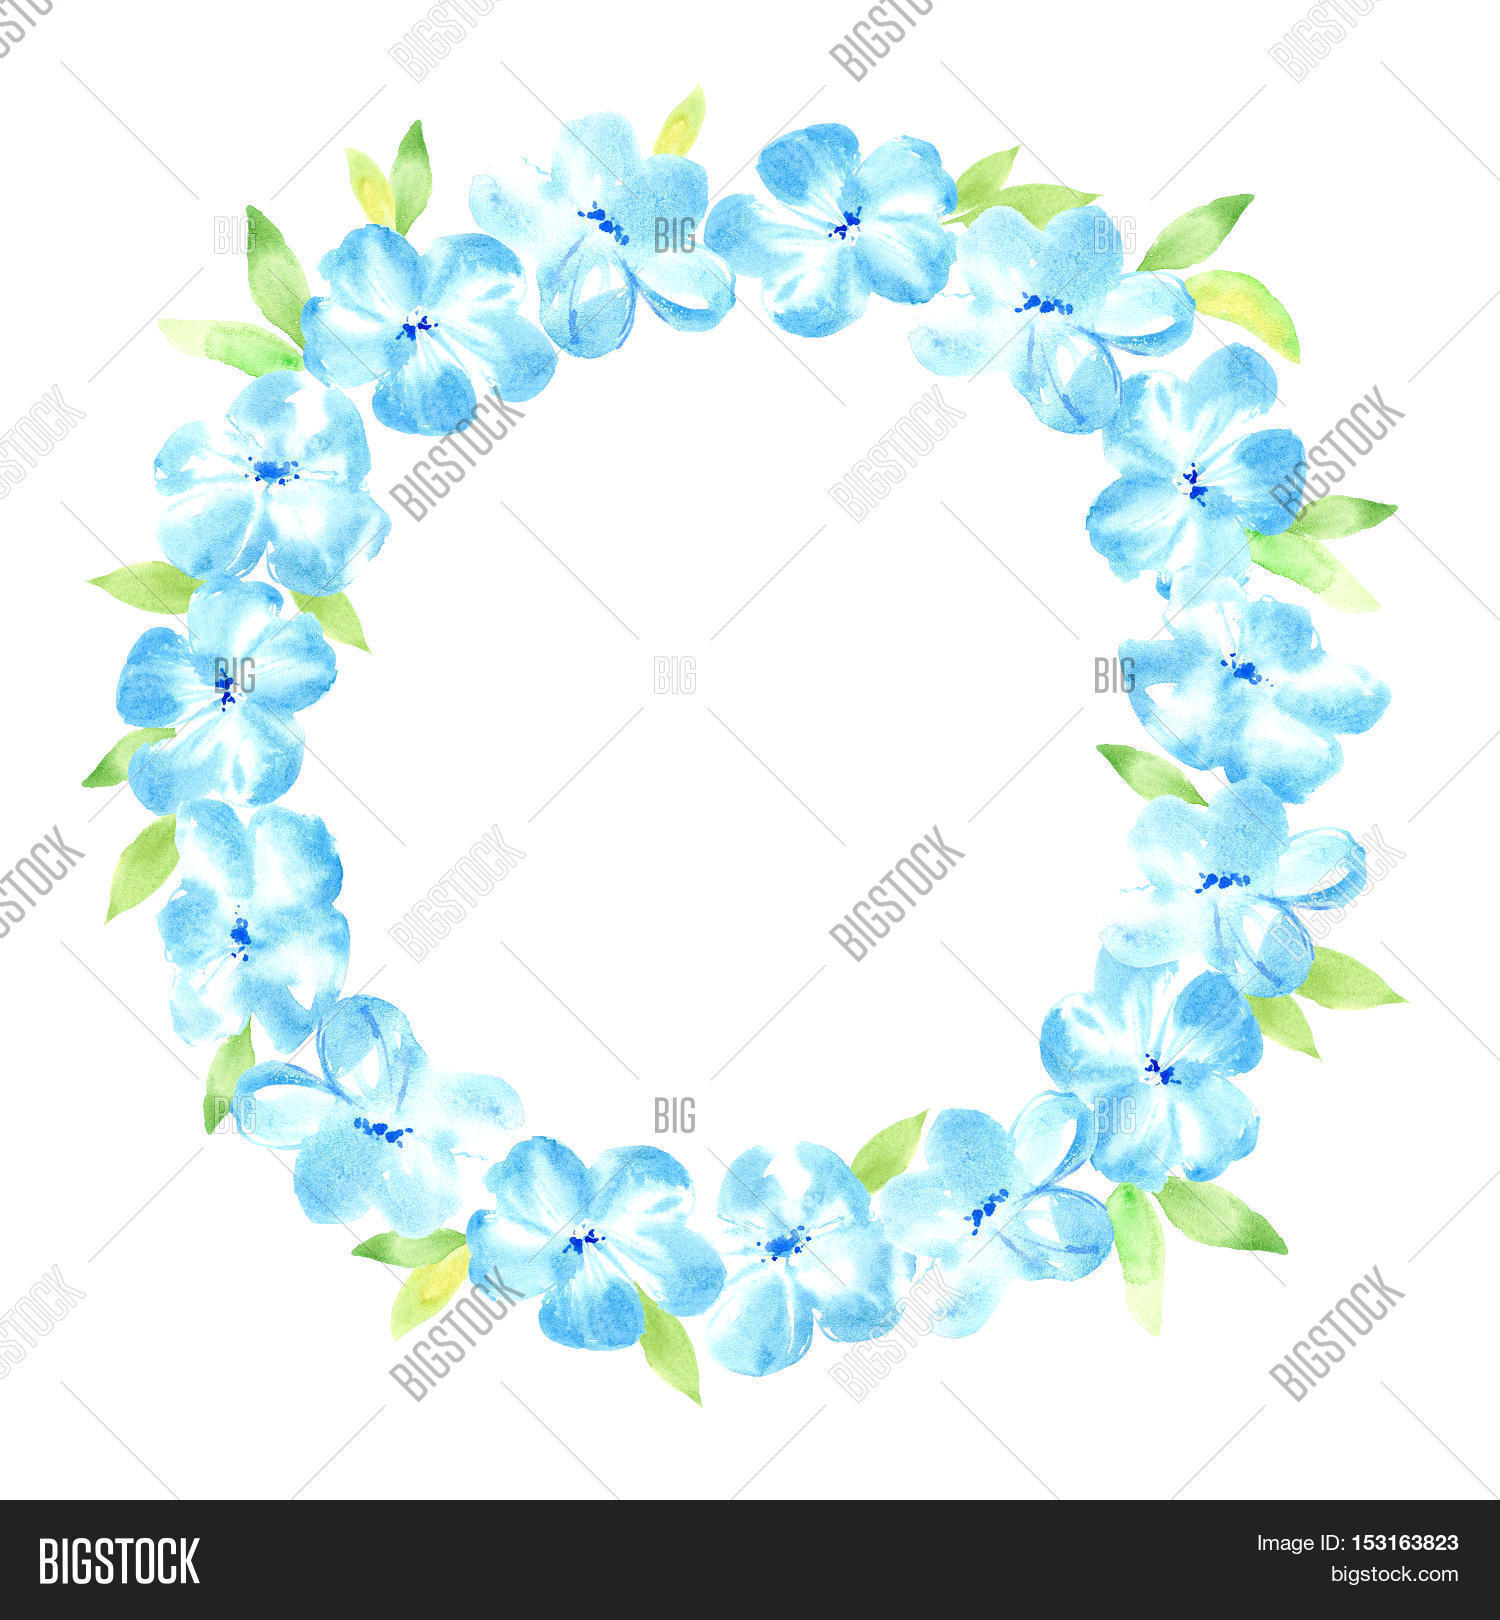 Floral wreathrland image photo free trial bigstock floral wreathrland with blue flower and leavesherbal circle framewatercolor hand izmirmasajfo